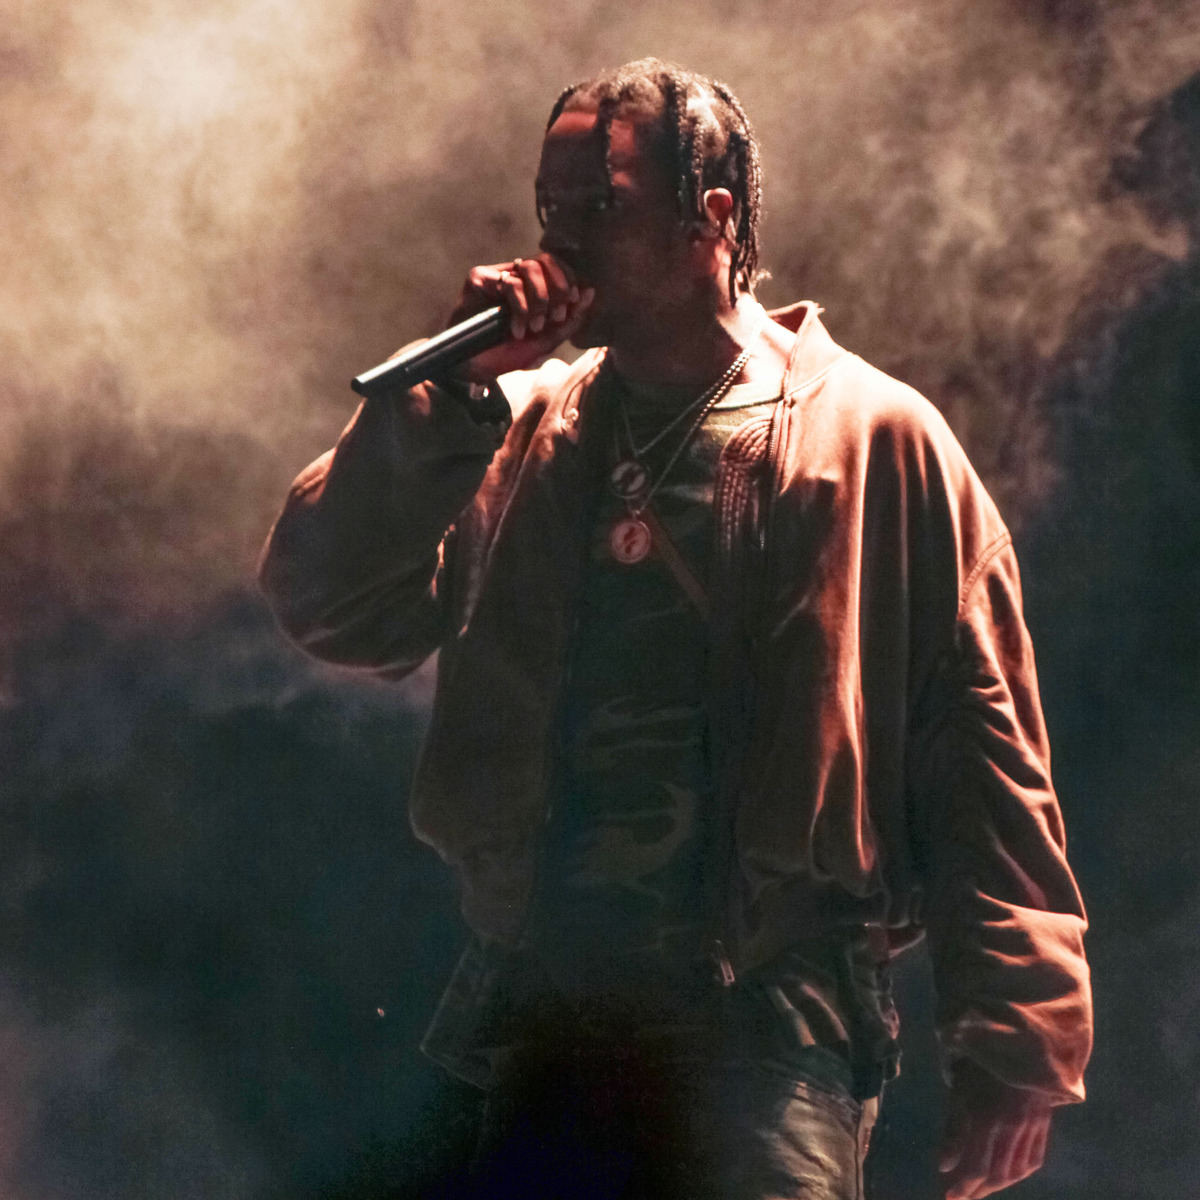 bc685e8ca818 The Brightest Star on Travis Scott's 'Watch' Isn't Kanye West